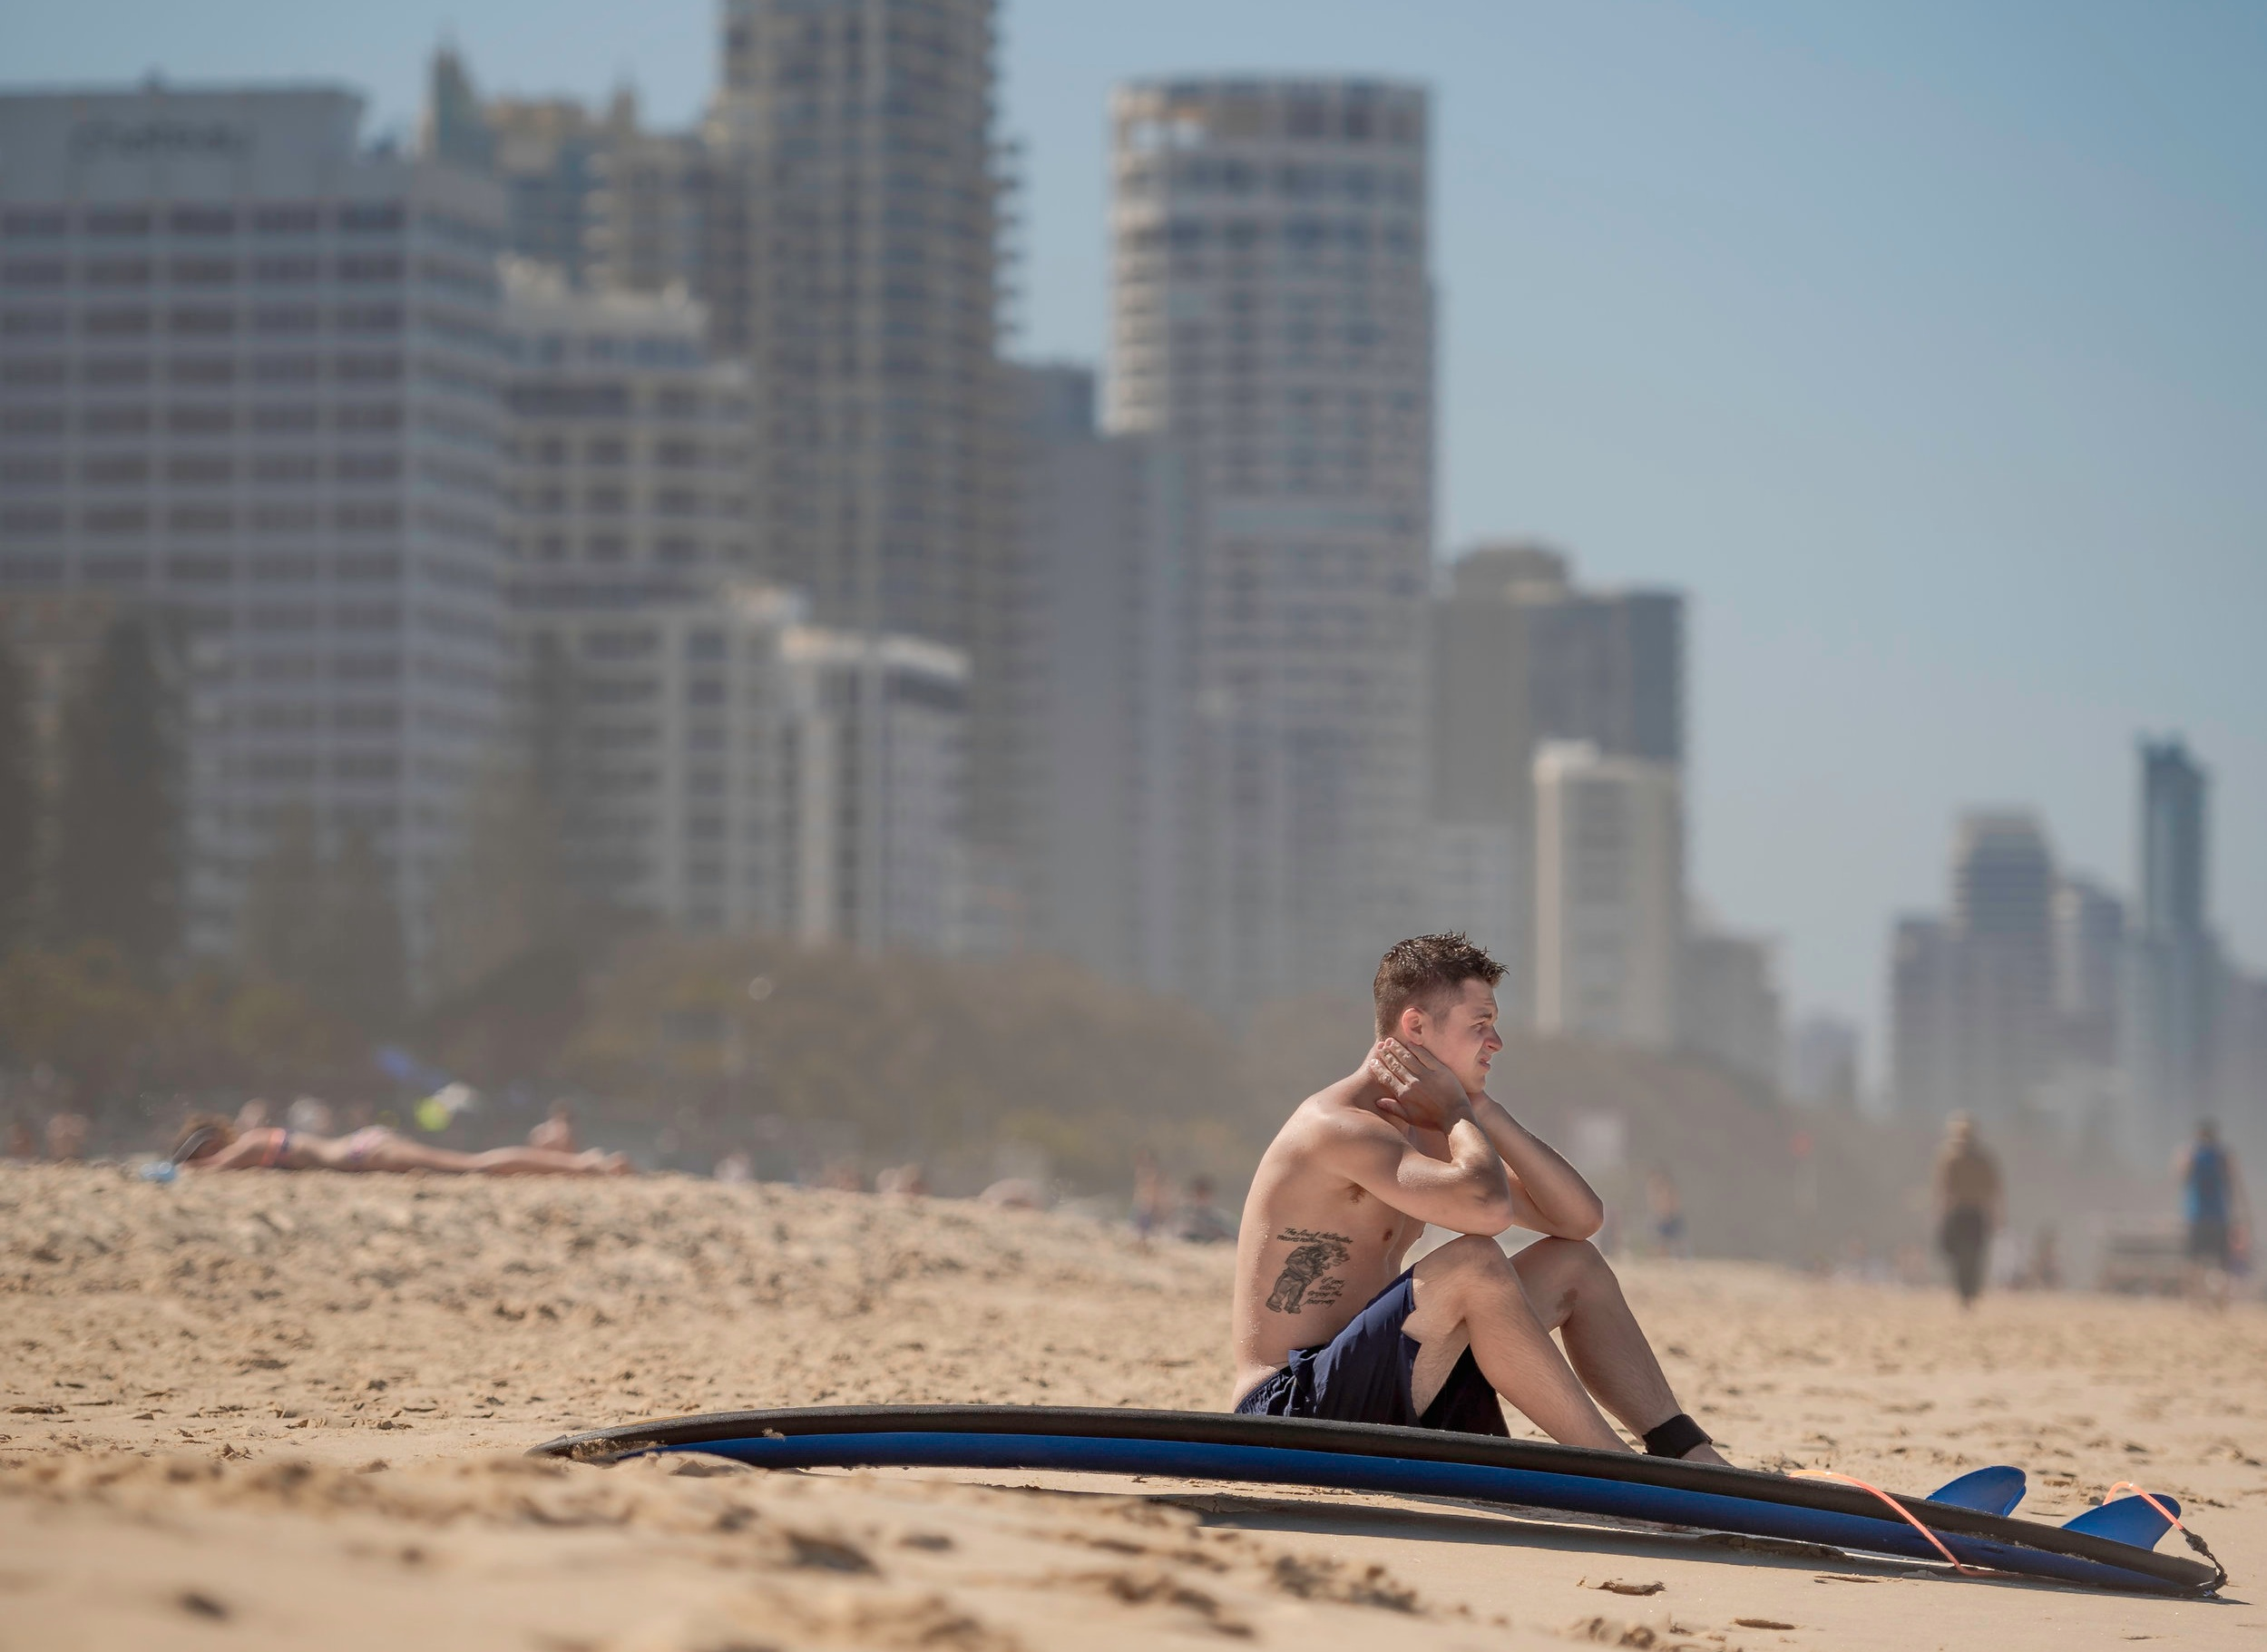 Taking a break at Surfers Paradise (Image: Asif Aman,  Unsplash )